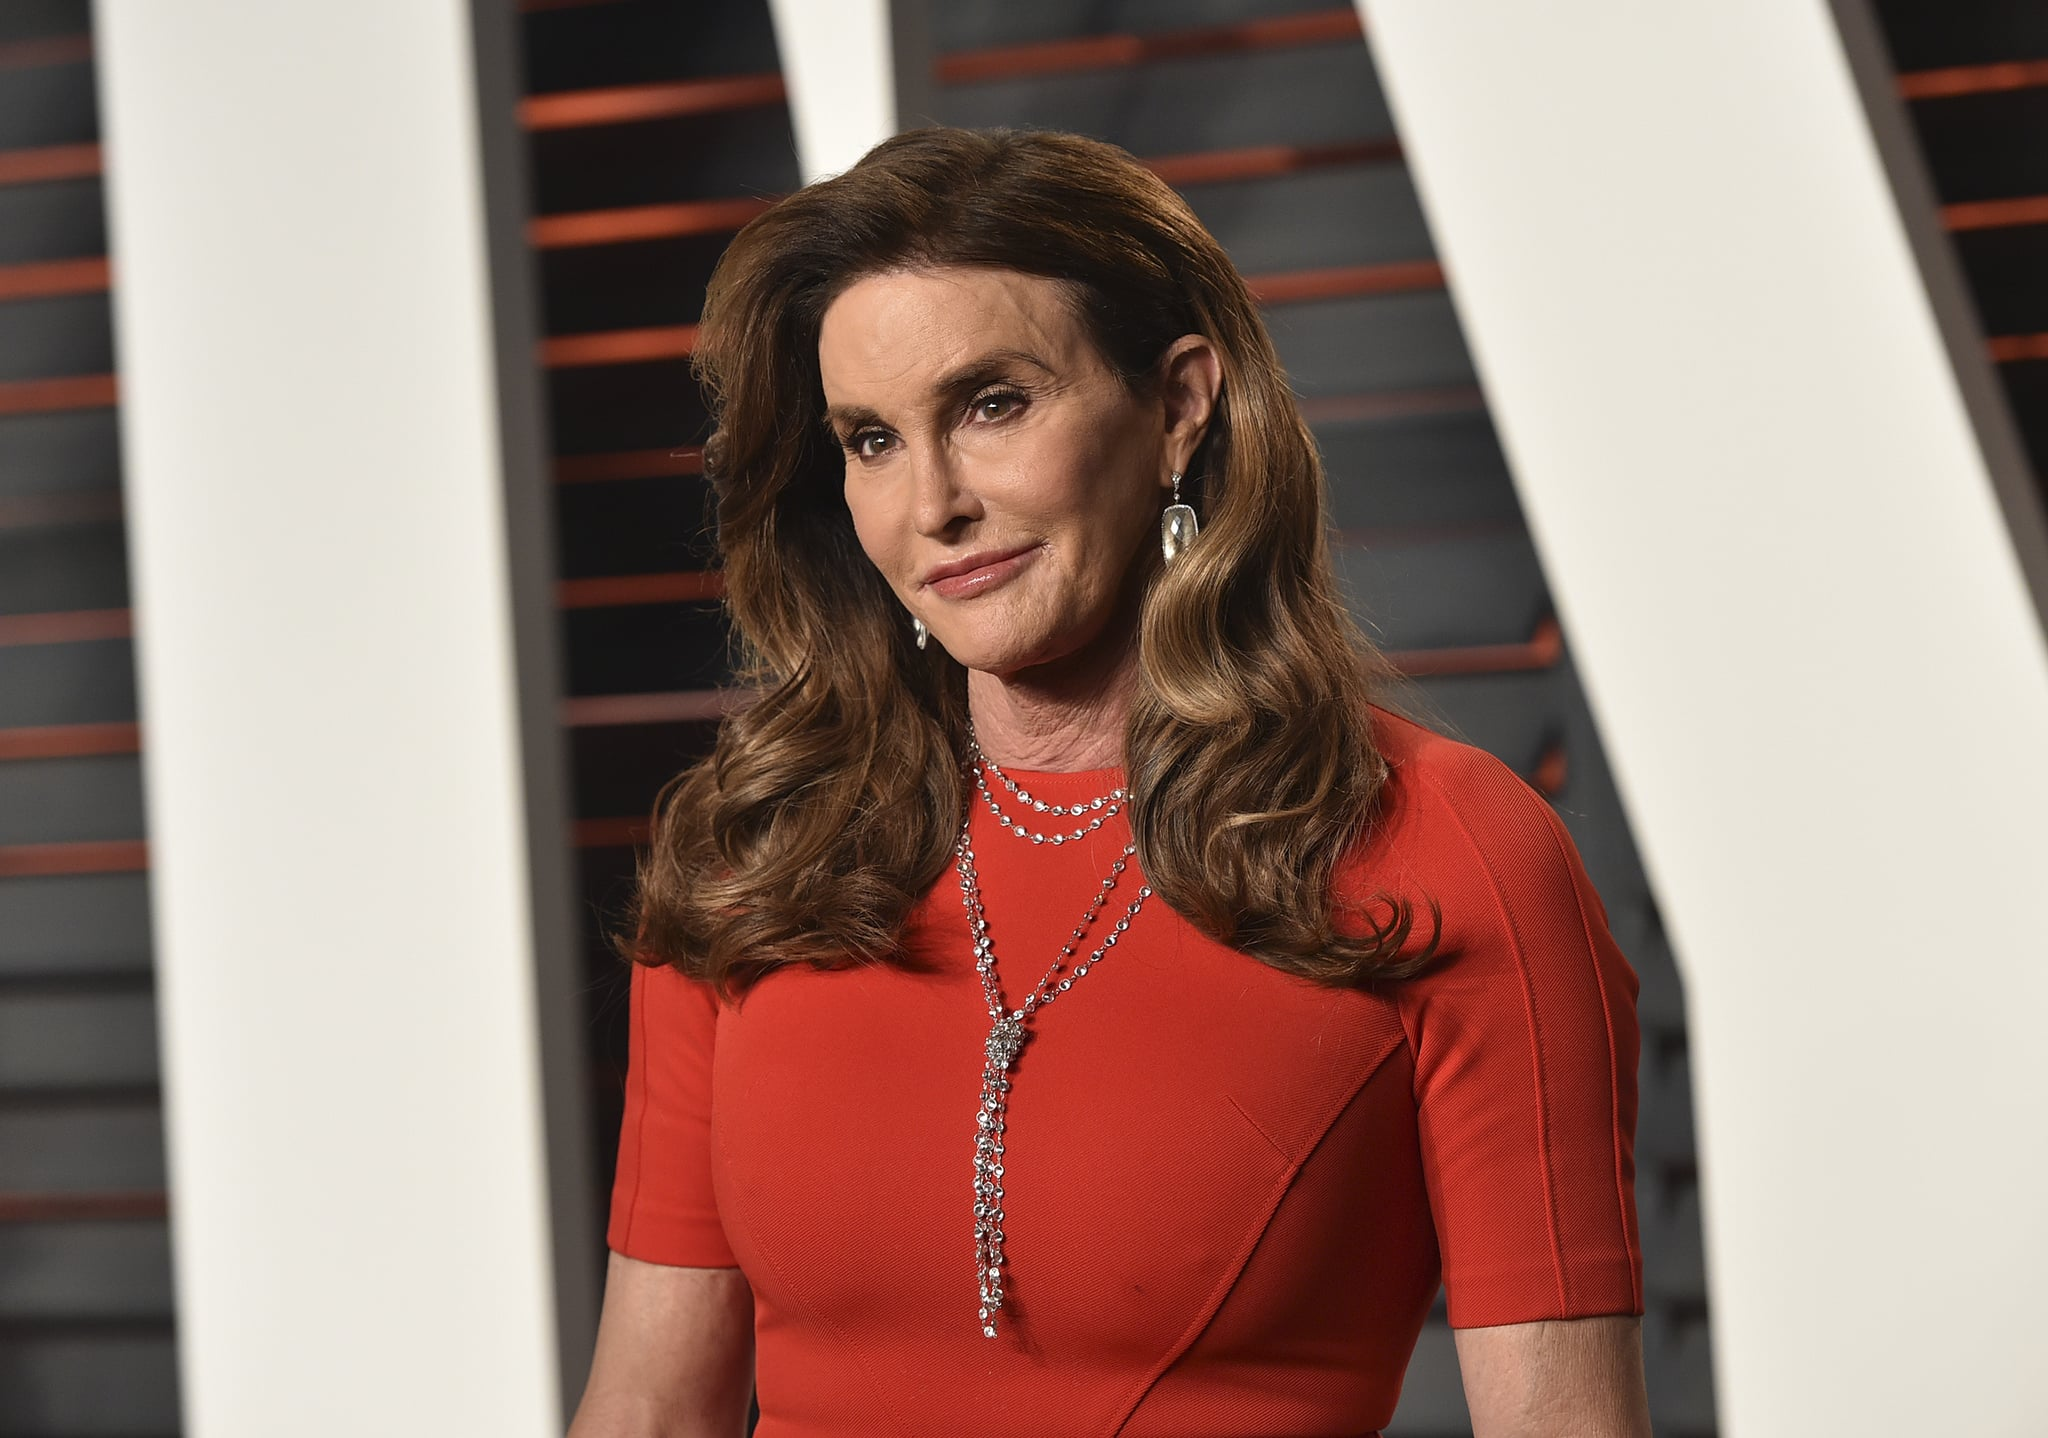 BEVERLY HILLS, CA - FEBRUARY 28:  TV personality Caitlyn Jenner arrives at the 2016 Vanity Fair Oscar Party Hosted By Graydon Carter at Wallis Annenberg Centre for the Performing Arts on February 28, 2016 in Beverly Hills, California.  (Photo by John Shearer/Getty Images)